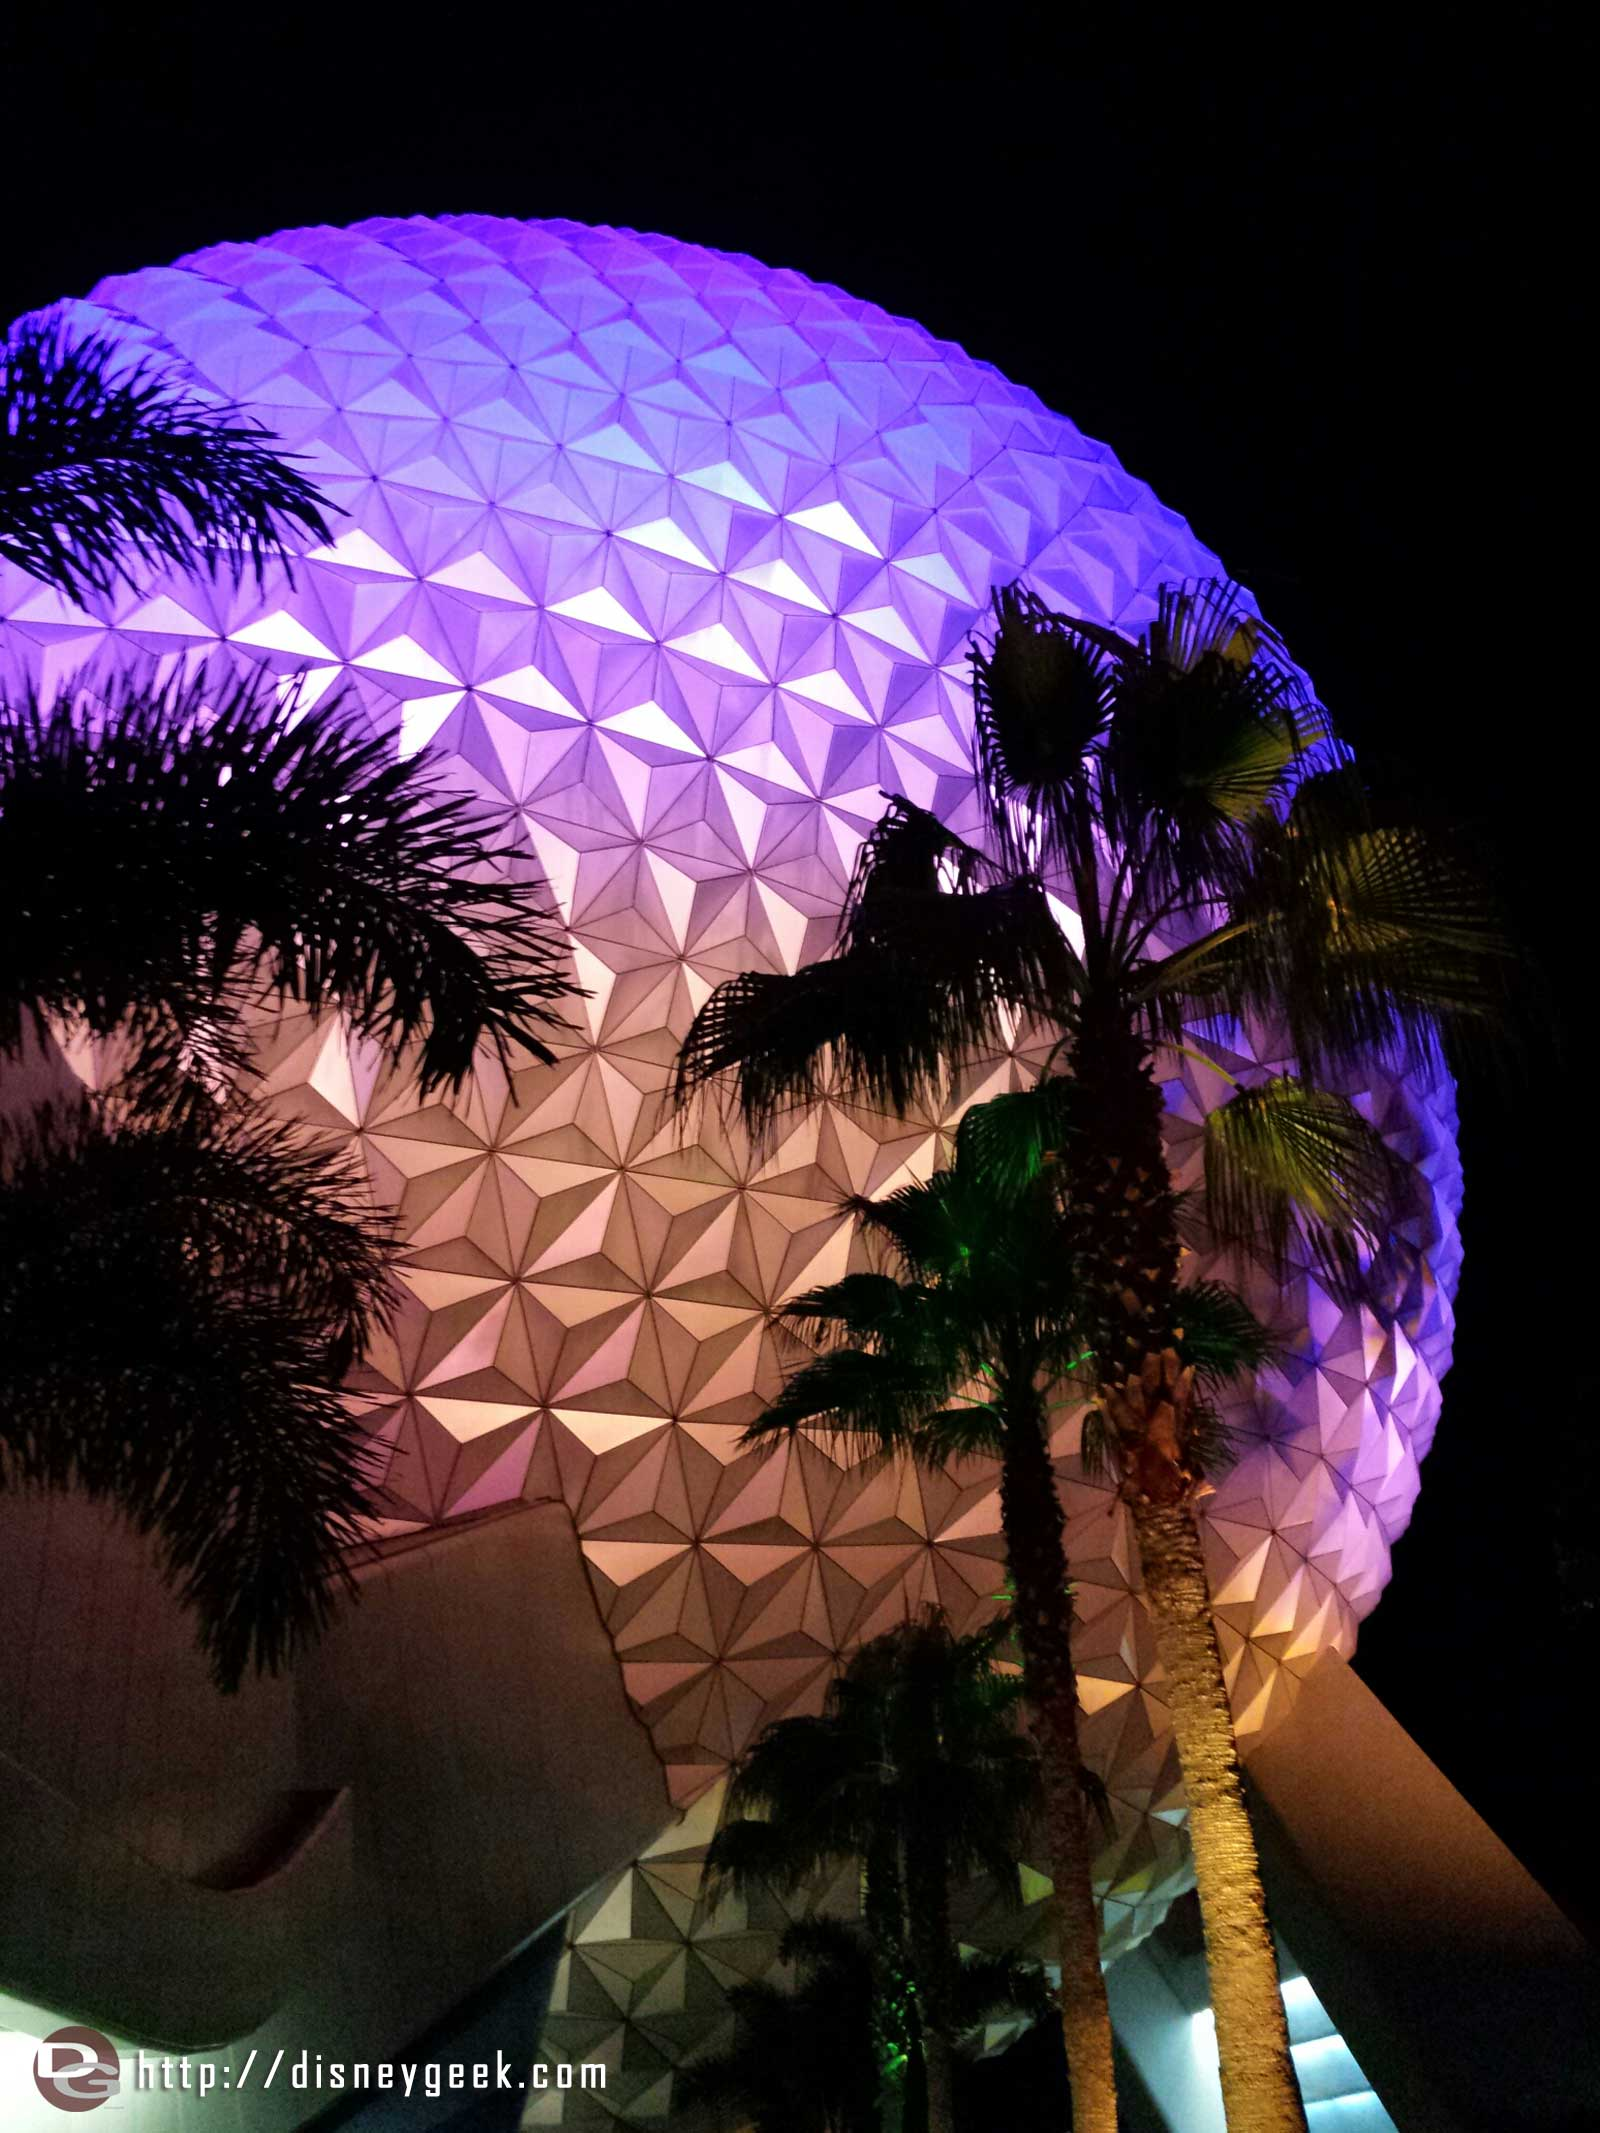 Spaceship Earth this evening #Epcot